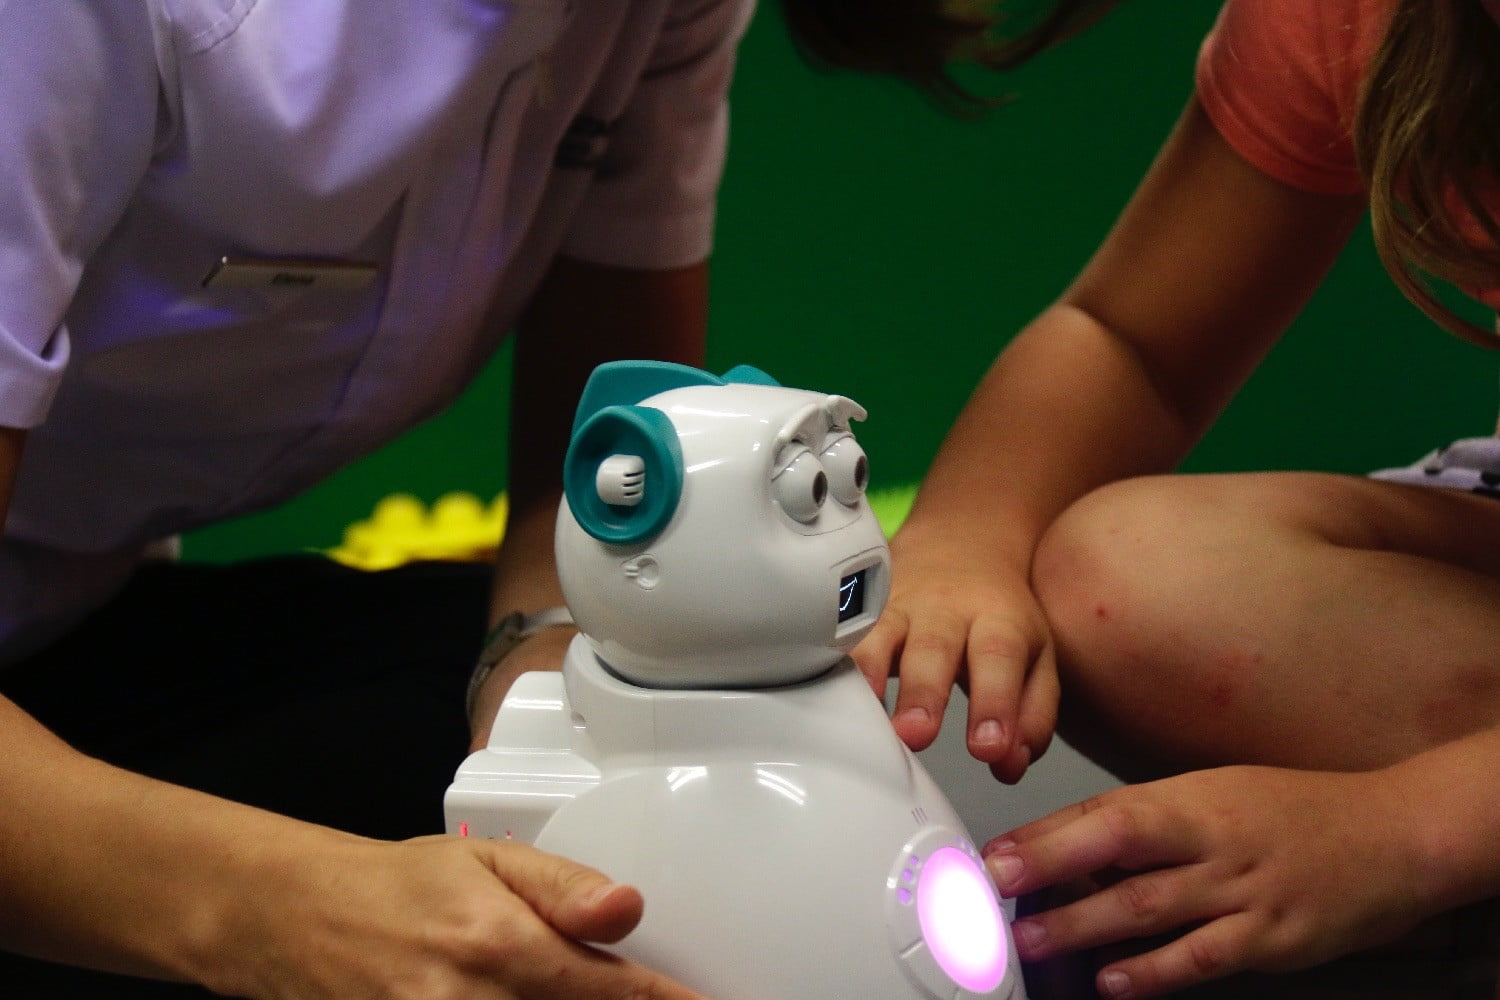 robot could help kids with autism mg 0850